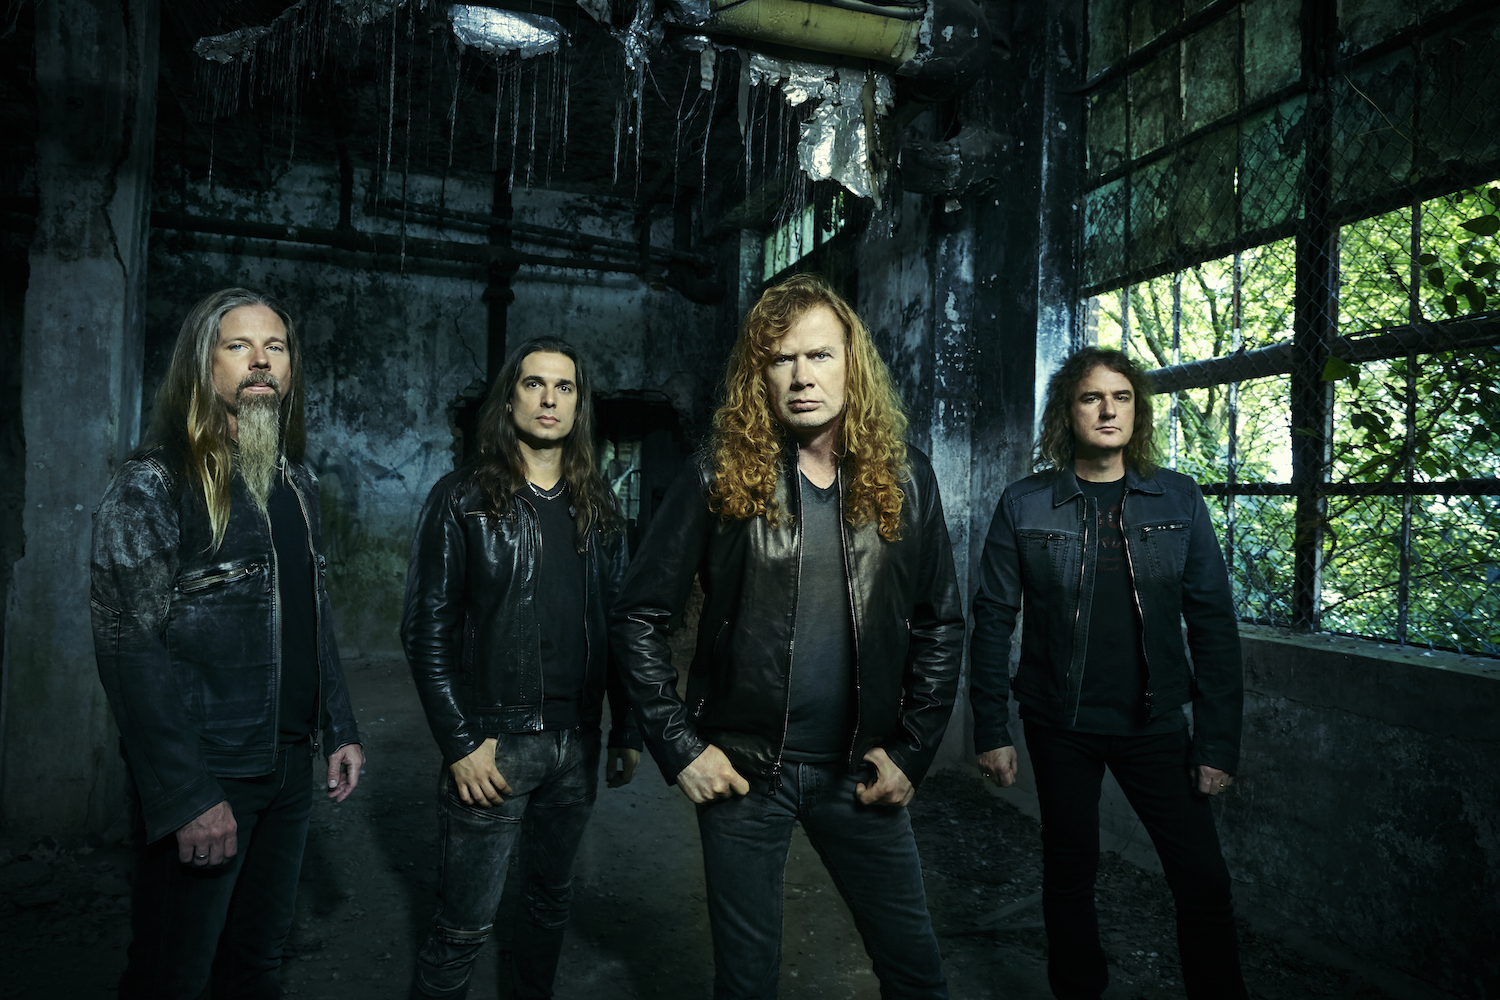 Legendary heavy metal band Megadeth to tour Malaysia in May